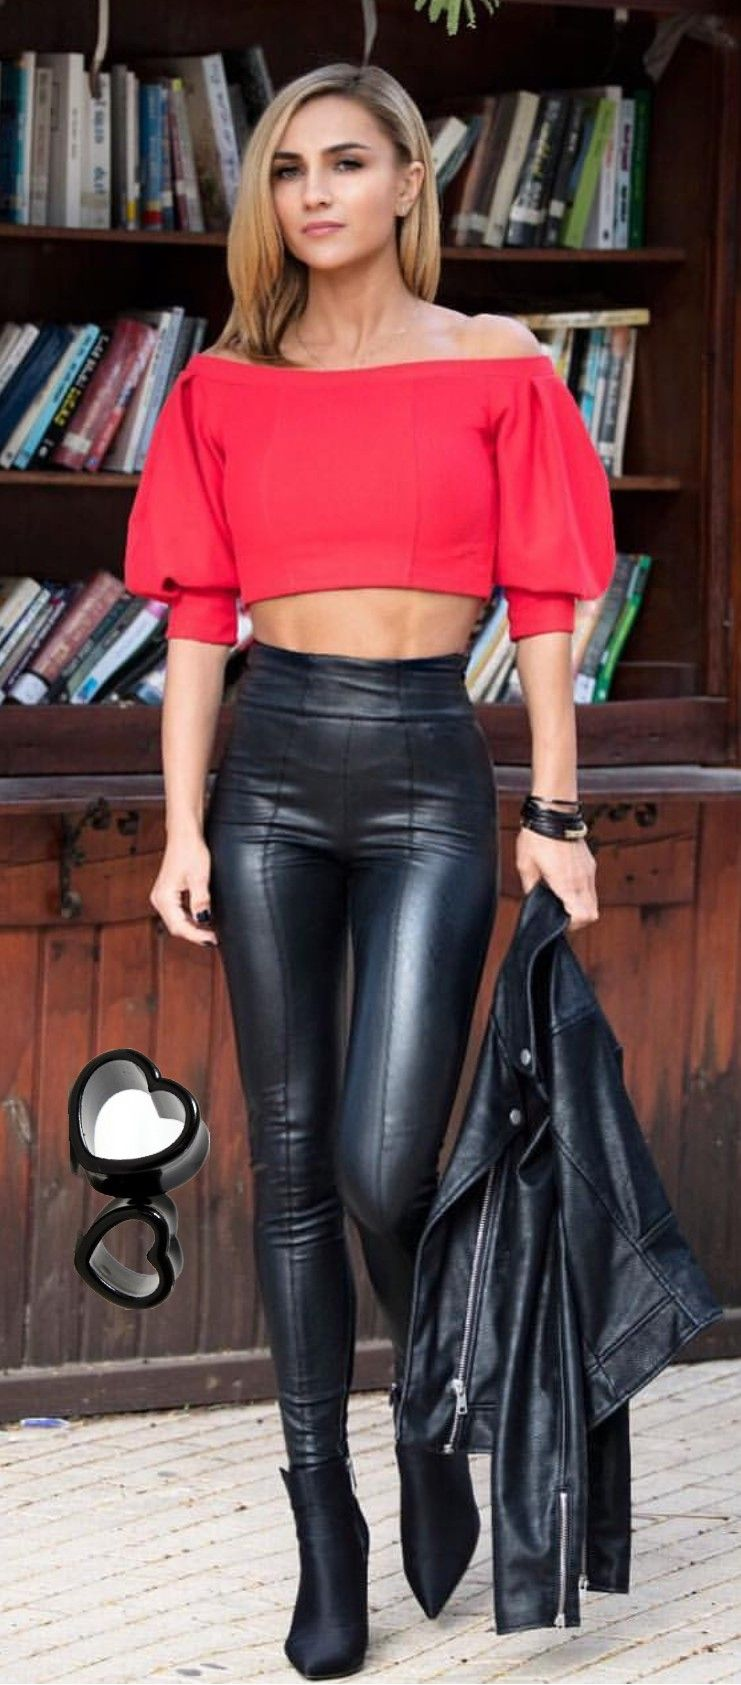 811911757bd33e nett Leather Jeans, Leather Pants Outfit, Tight Leather Pants, Leather And  Lace,